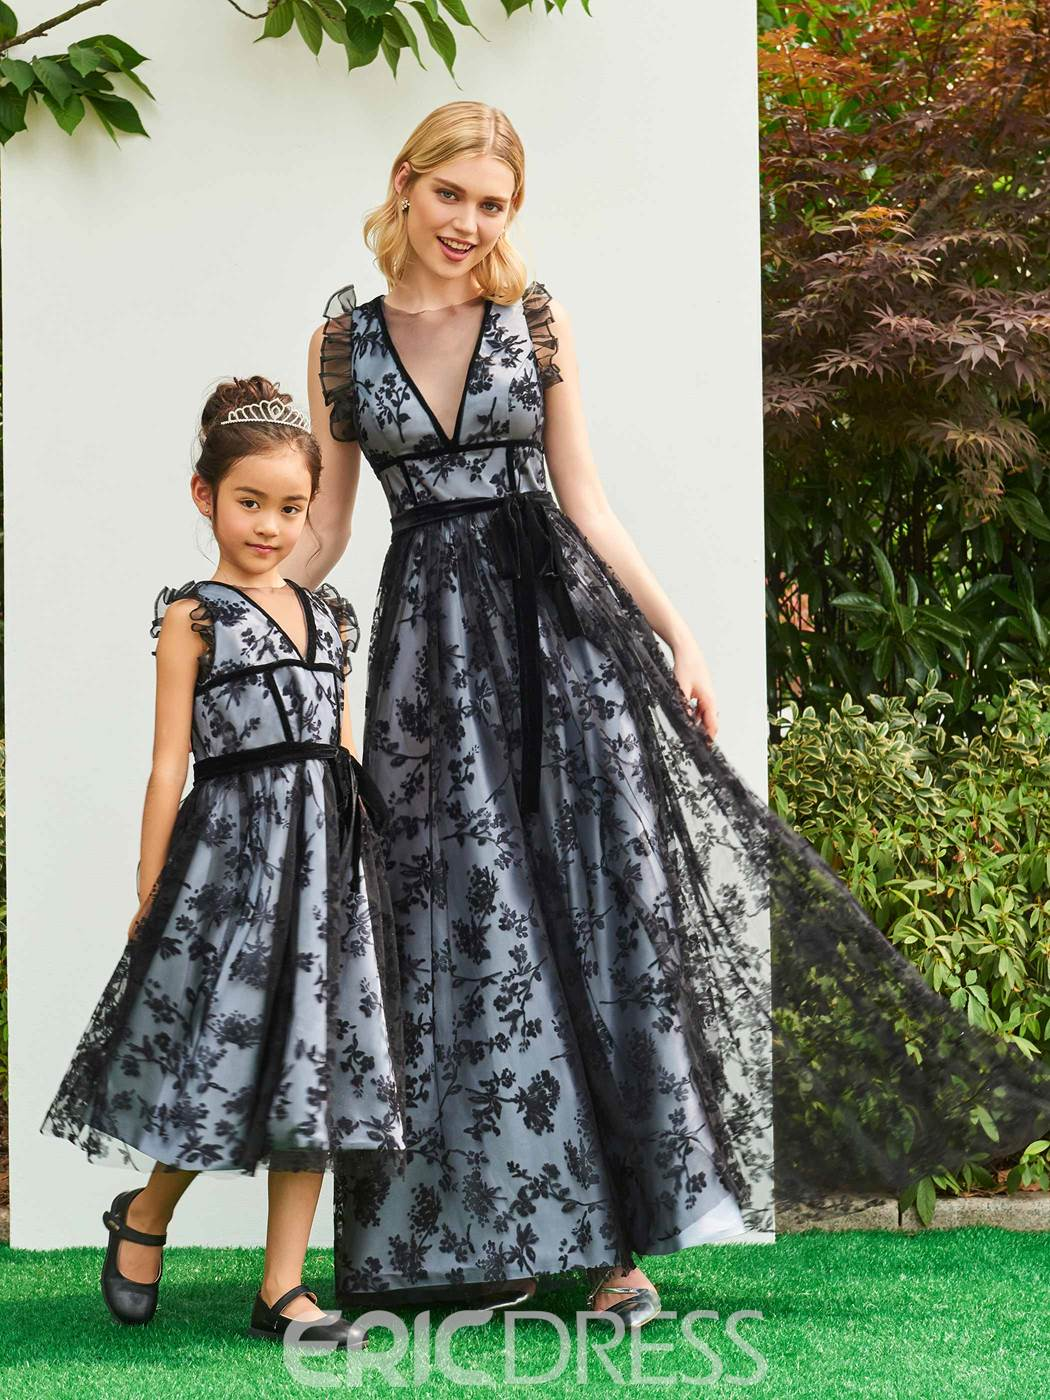 Ericdress Jewel A Line Tea Length Lace Flower Girl Party Dress